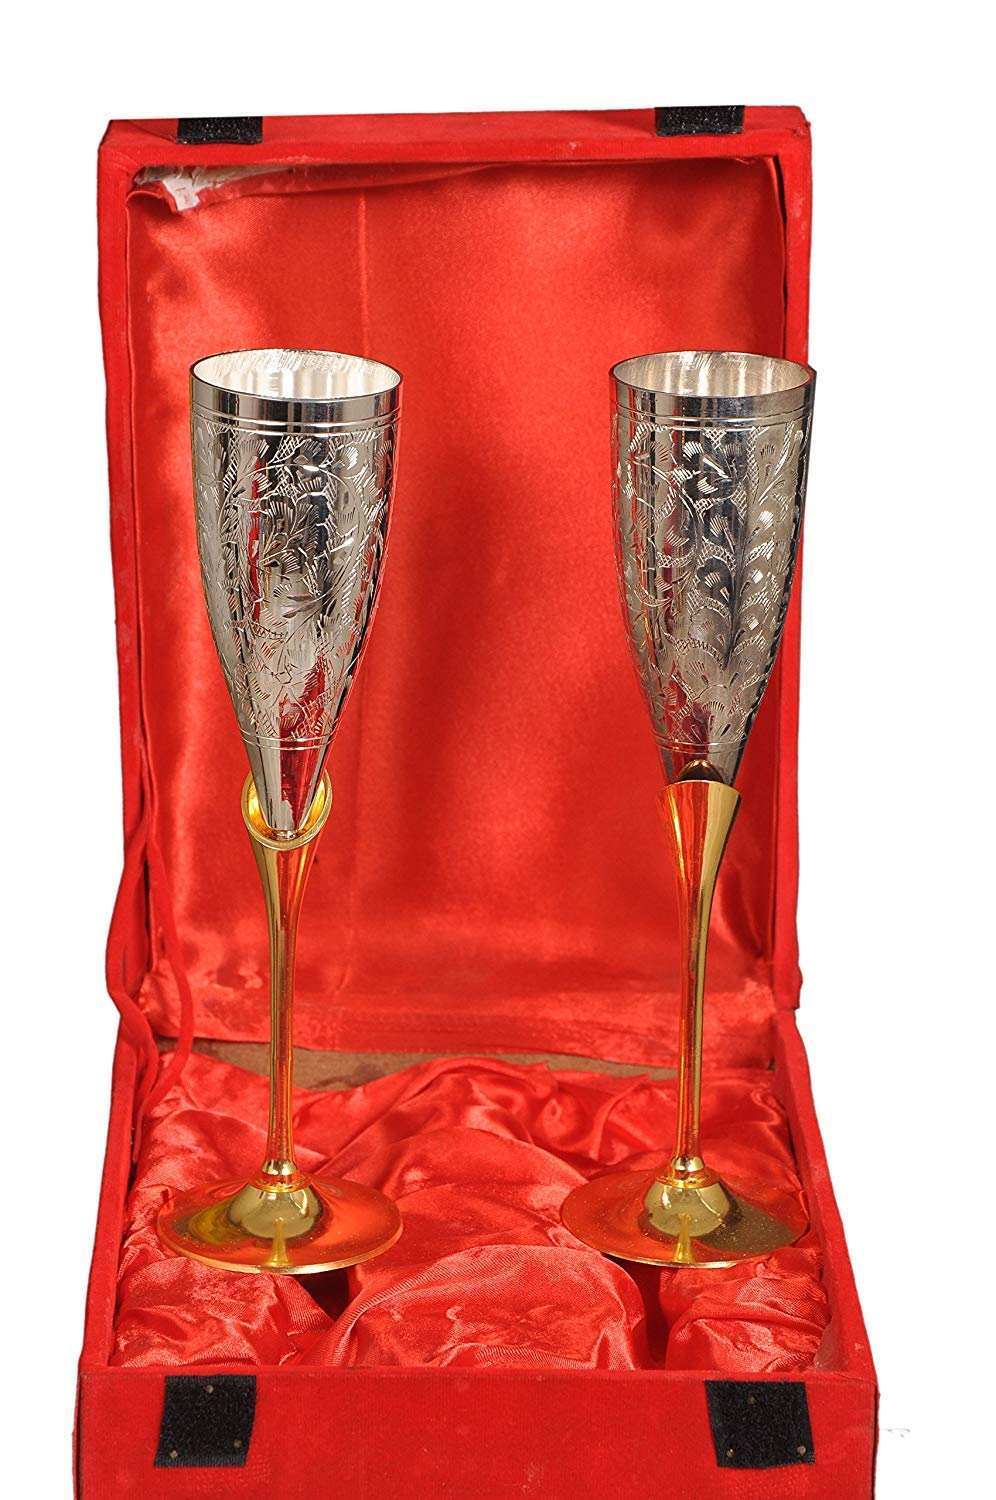 Nutristar Brass Wine Glass 2 Piece Set (Red Box)